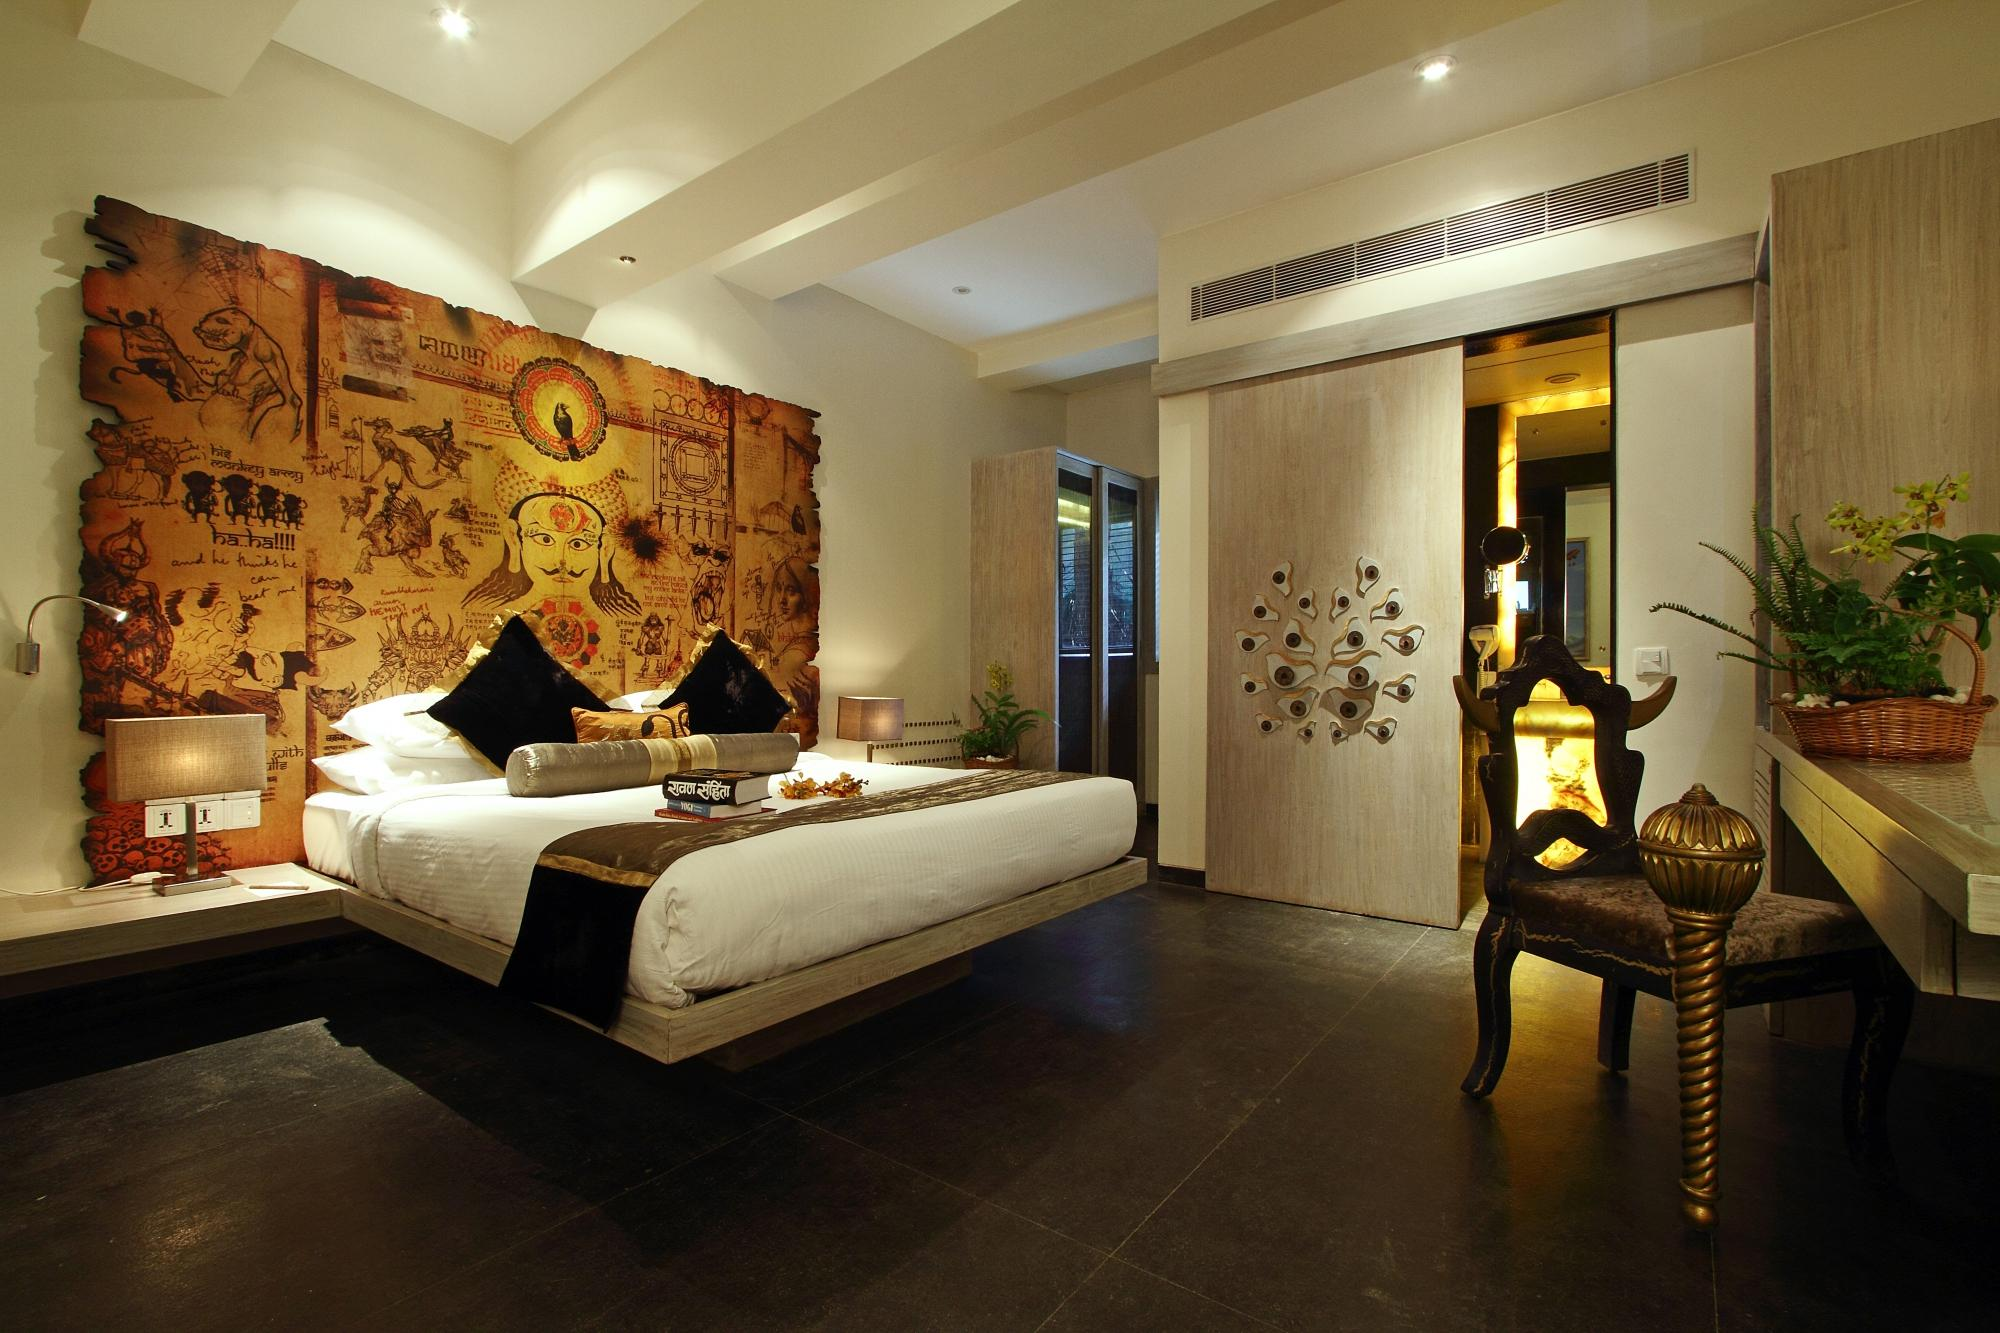 Le Sutra - The Indian Art Hotel